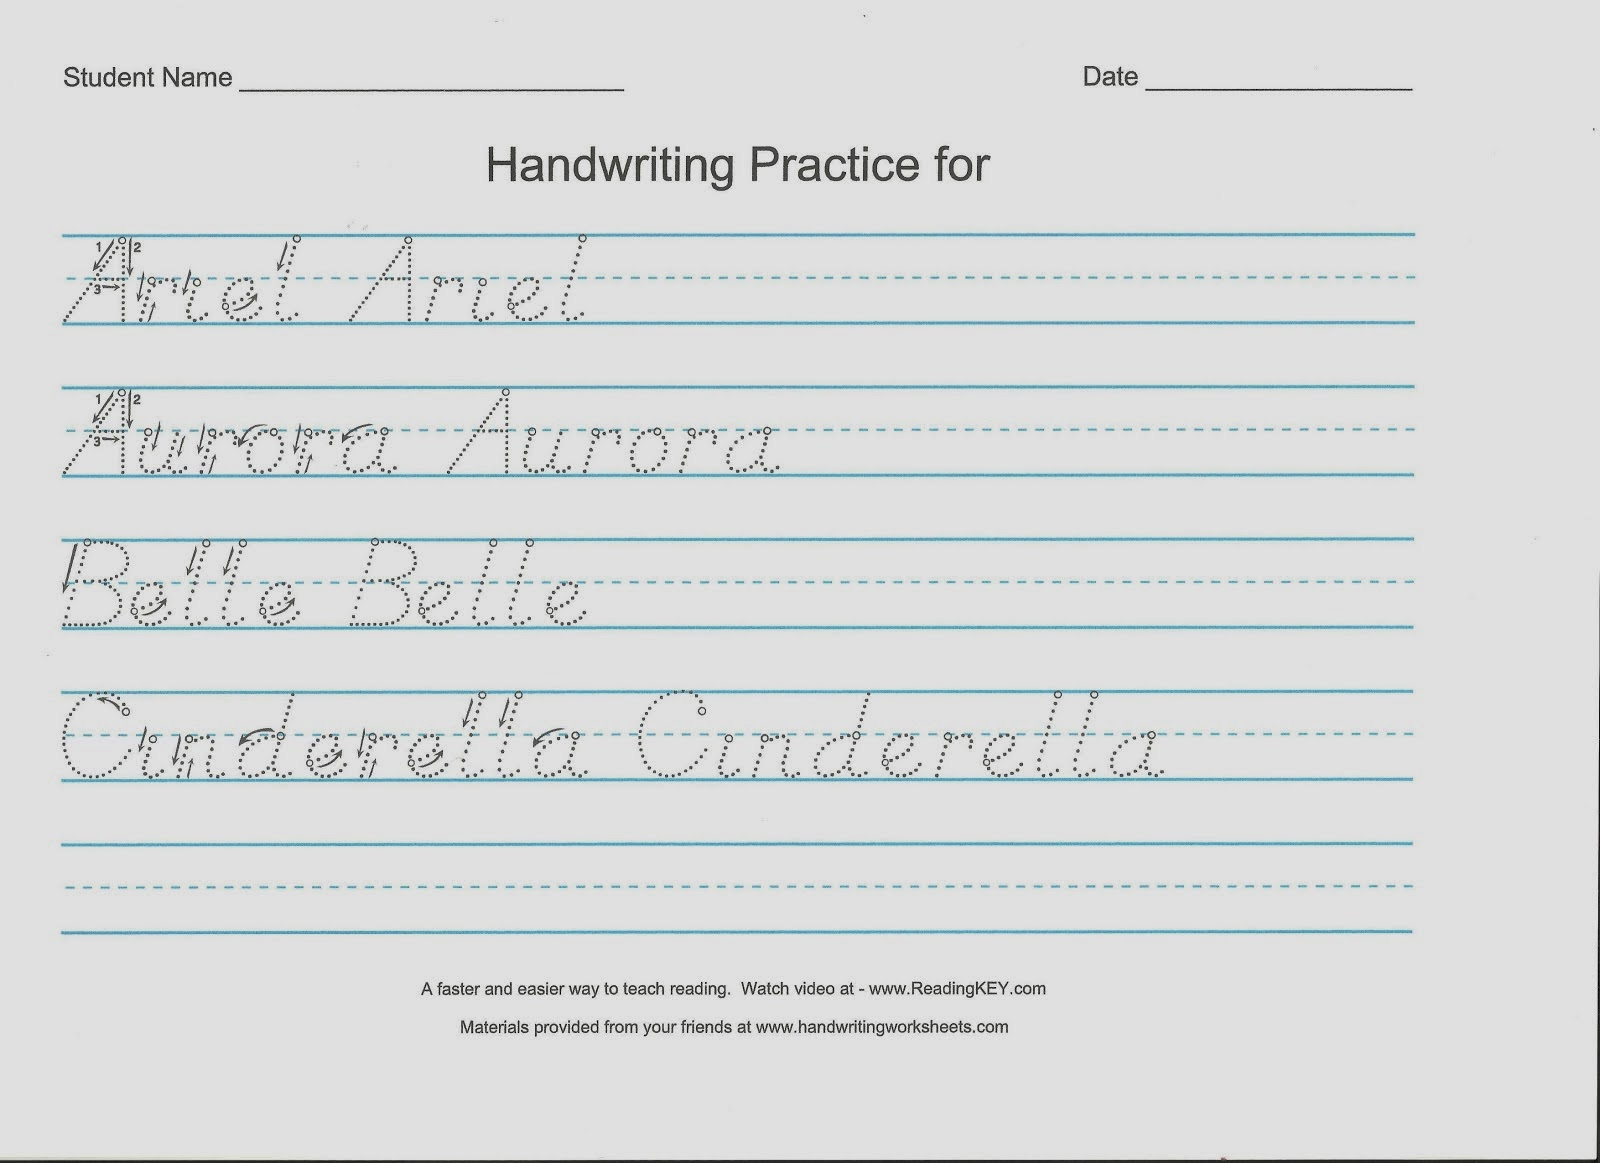 Handwriting Practice Sheets | Hand Writing